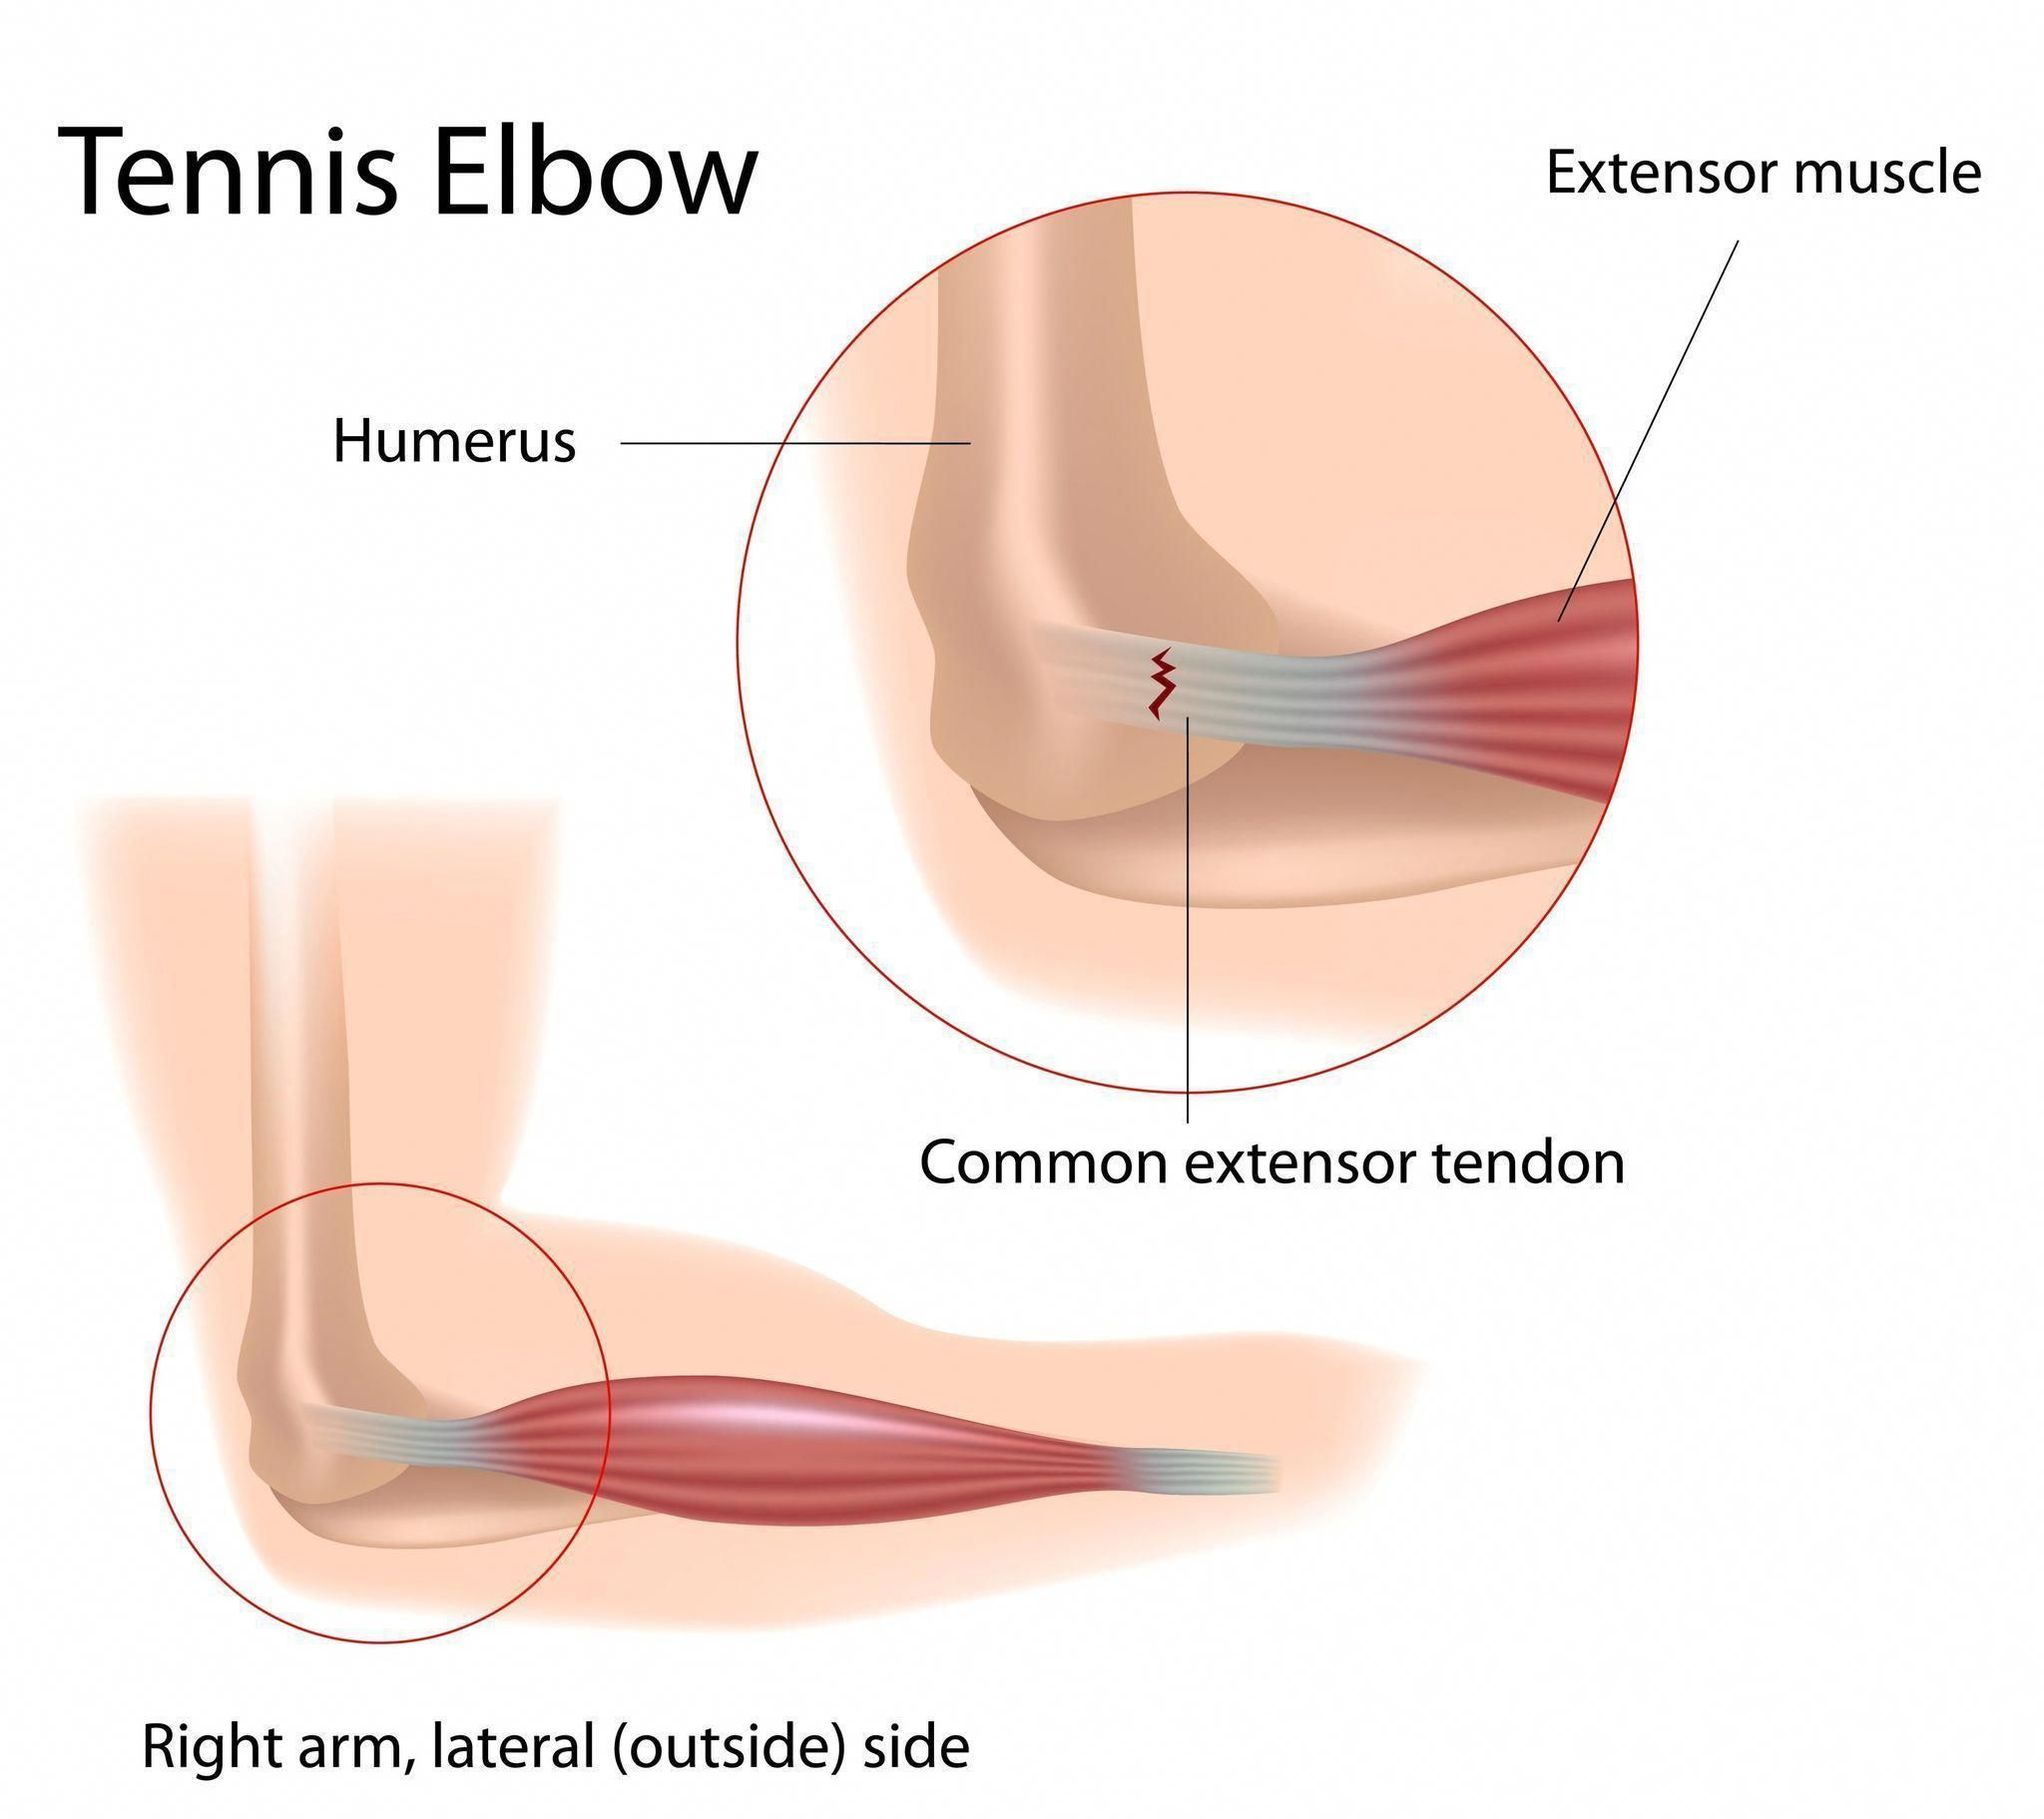 medium resolution of  tennis elbow is a common term for a condition caused by overuse of arm forearm and hand muscles that results in elbow pain you don t have to play tennis